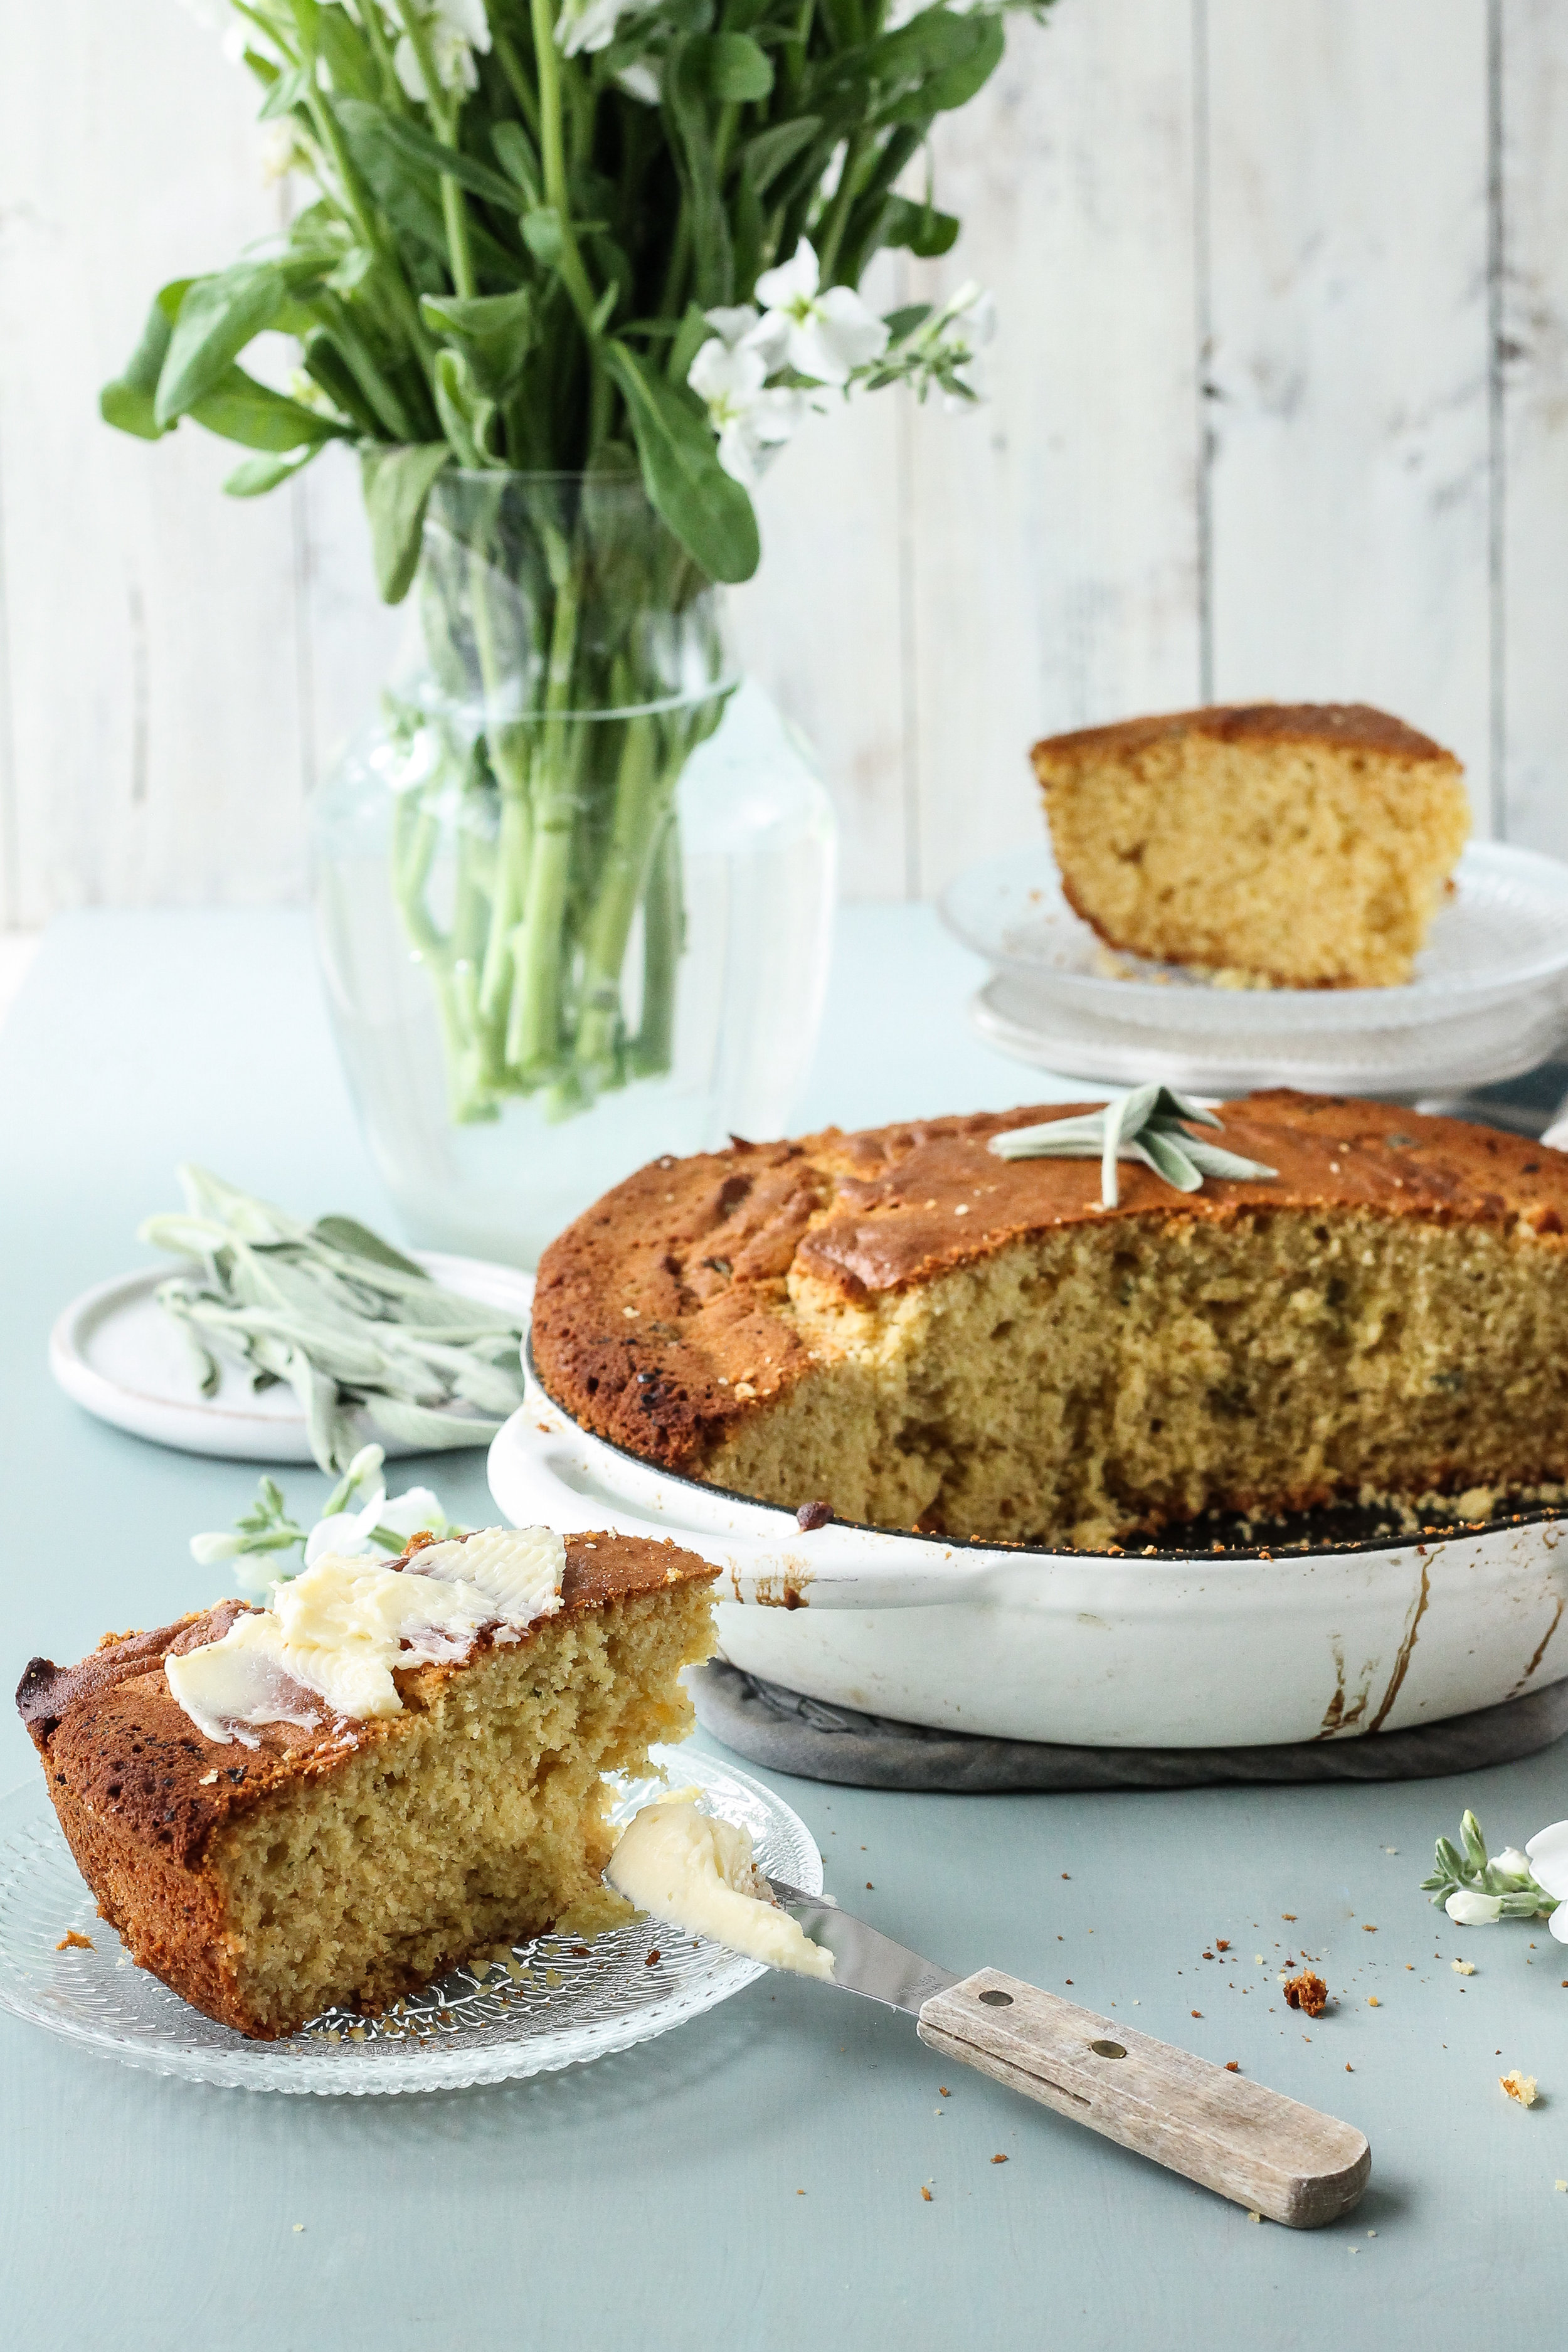 This sage & brown butter cornbread is a total game changer and it's just dying to buddy-up with your favorite fried chicken.  Find the recipe on WWW.PEDANTICFOODIE.COM!